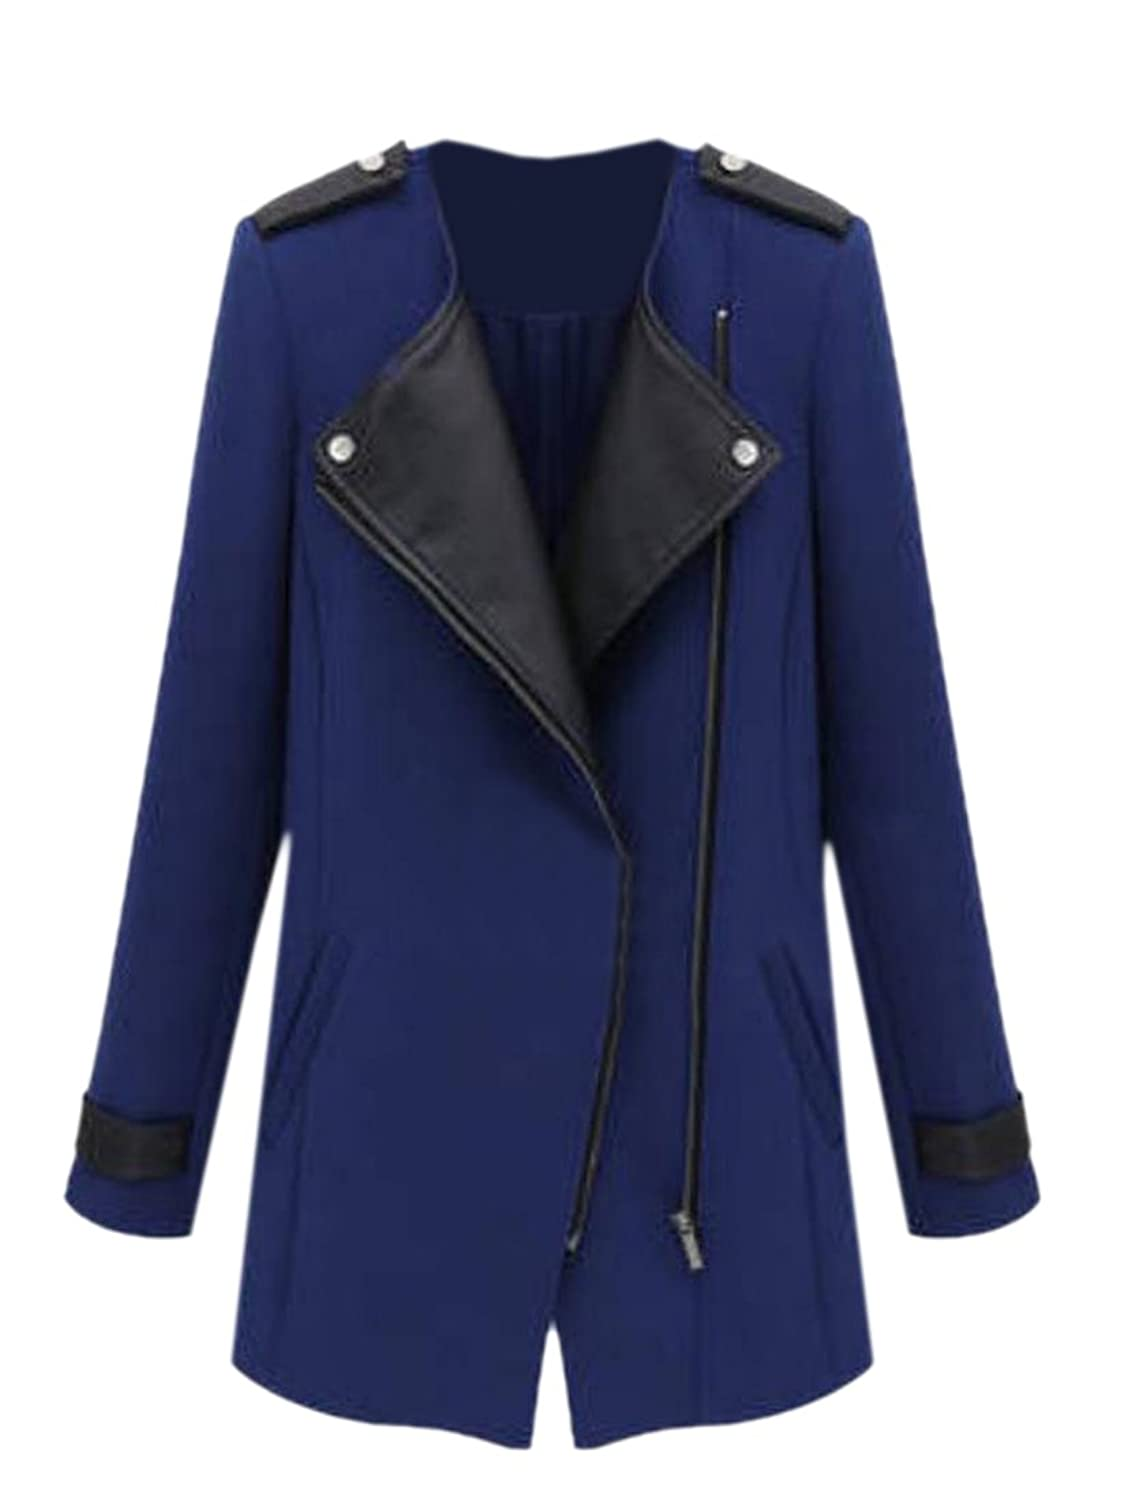 Tootless Women's Casual Fashion Long Sleeve Long Trench Coat